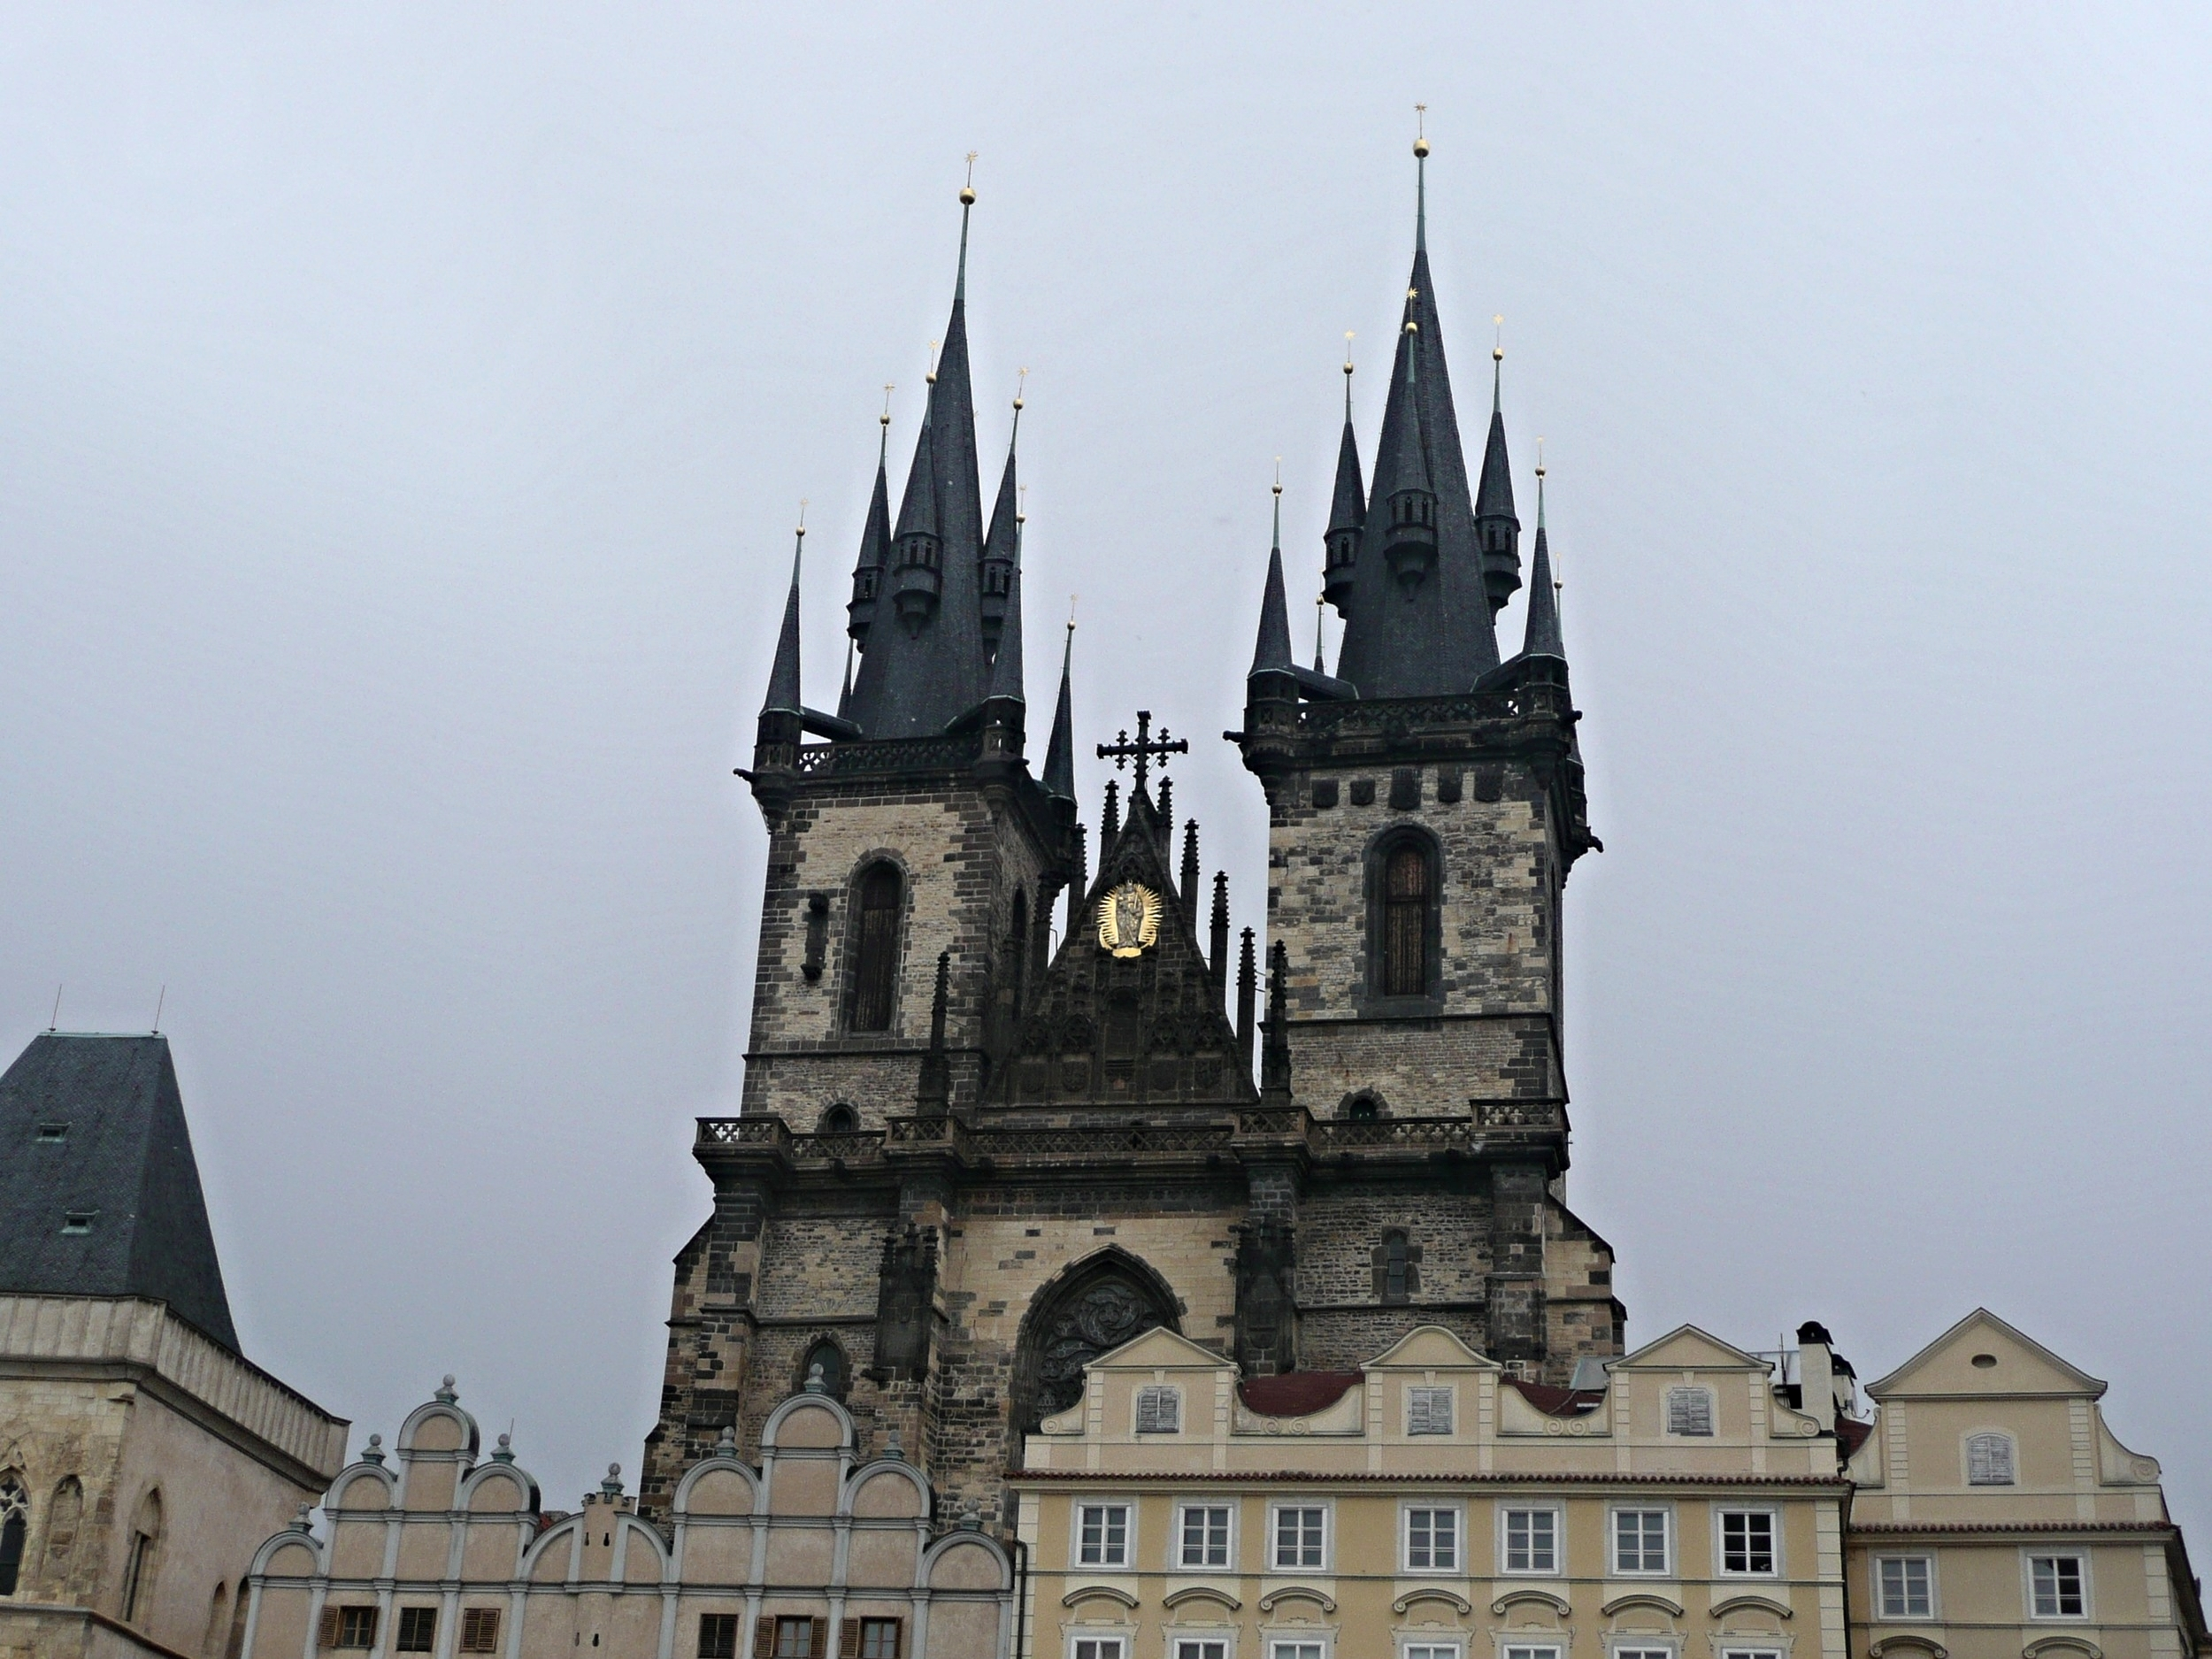 The Church of Our Lady before Týn